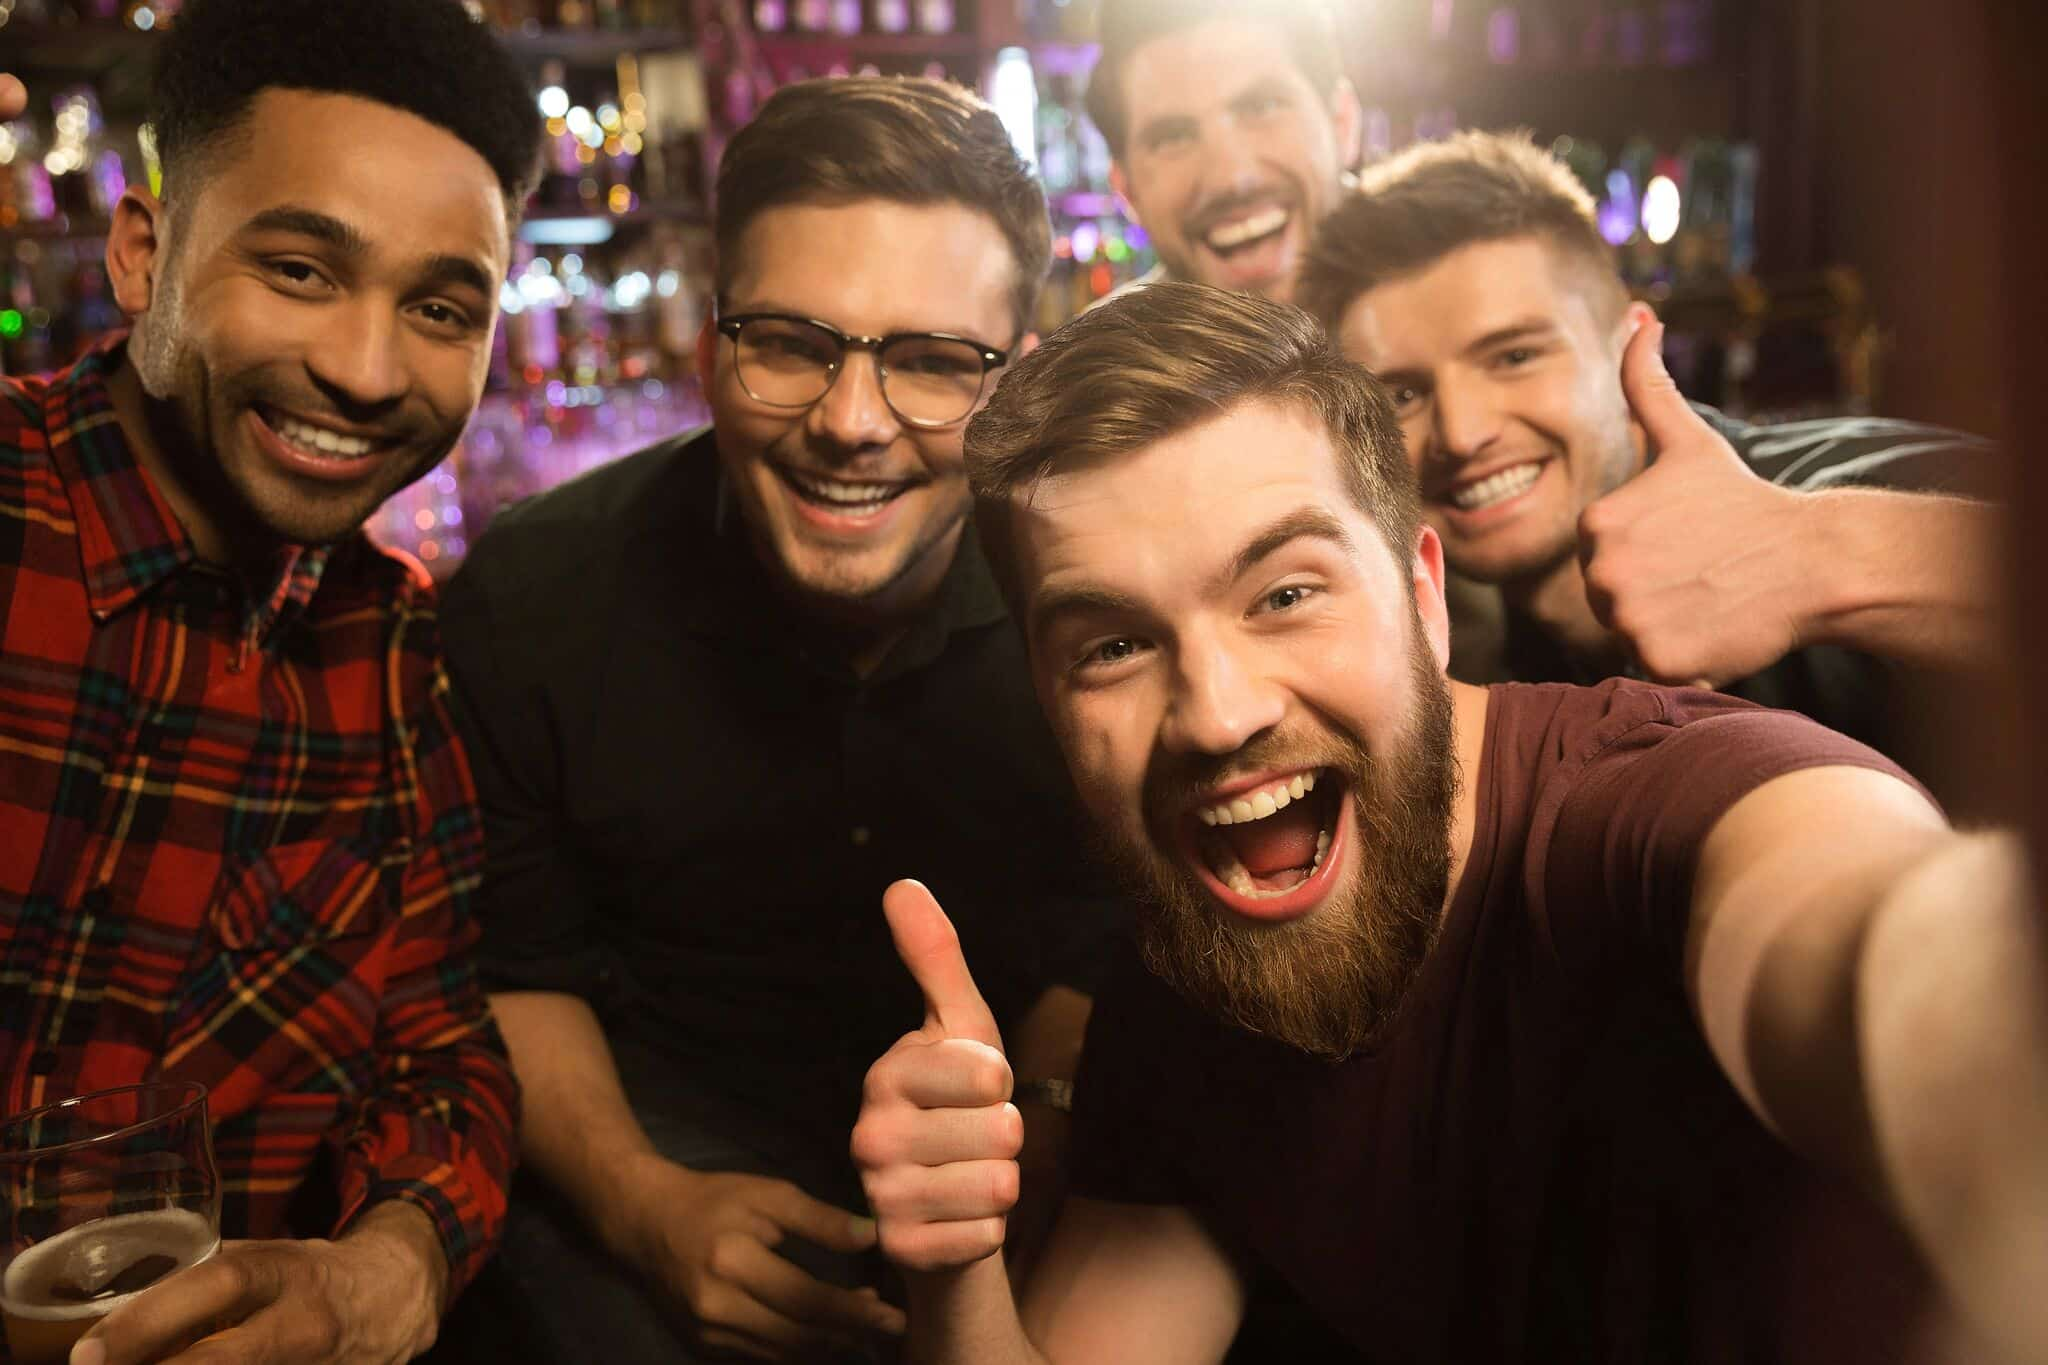 10 Bars You Should Include On Your Gay Night Out